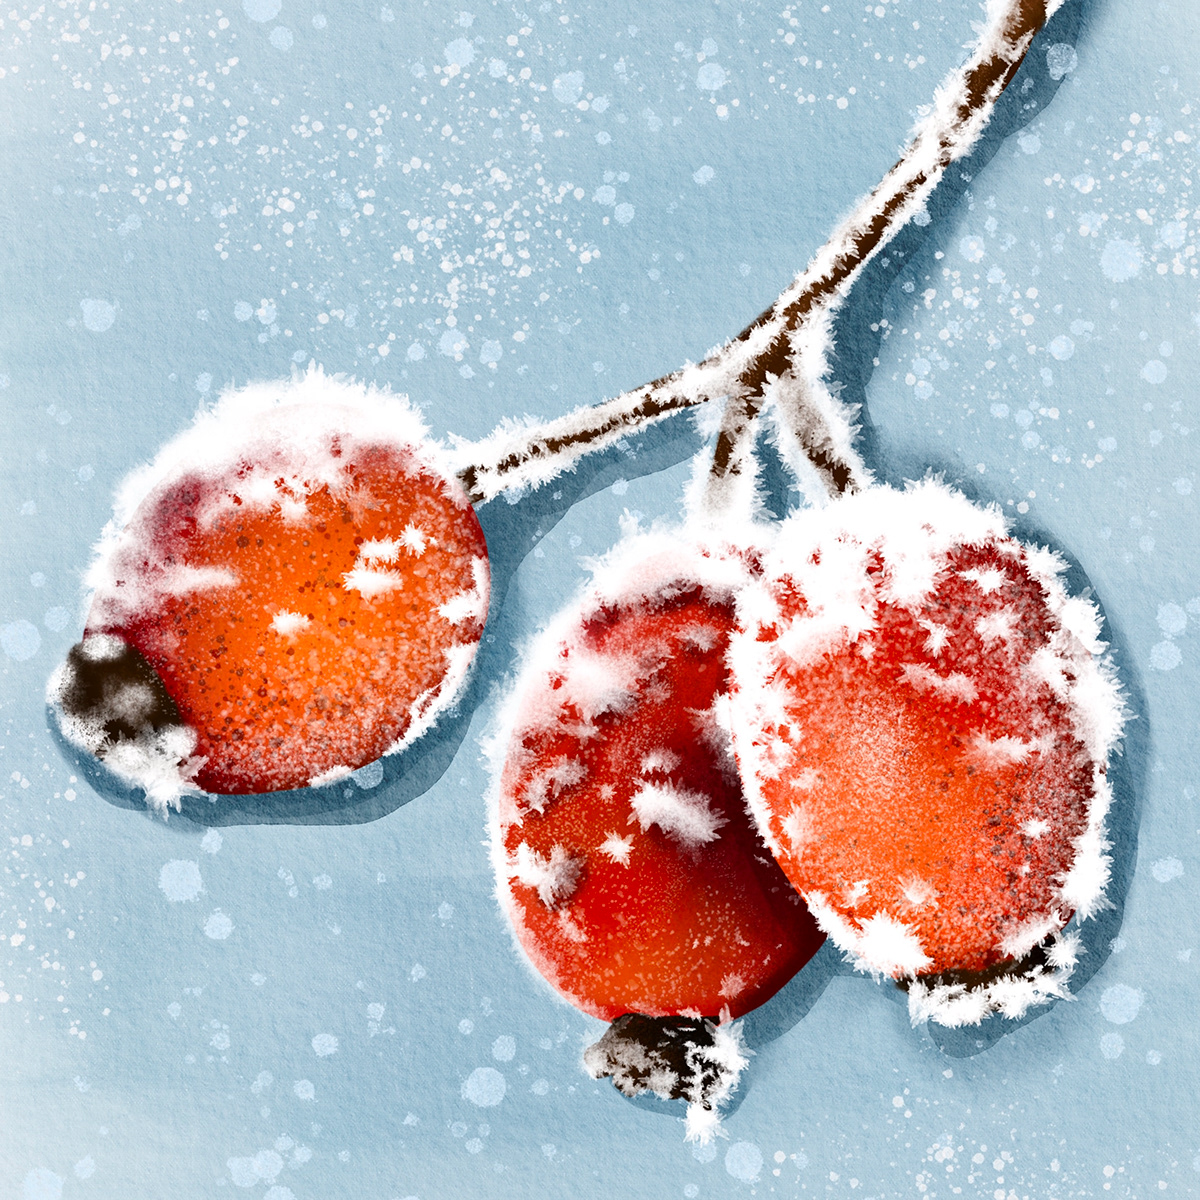 berries cold Flowers ice Nature red snow watercolour winter